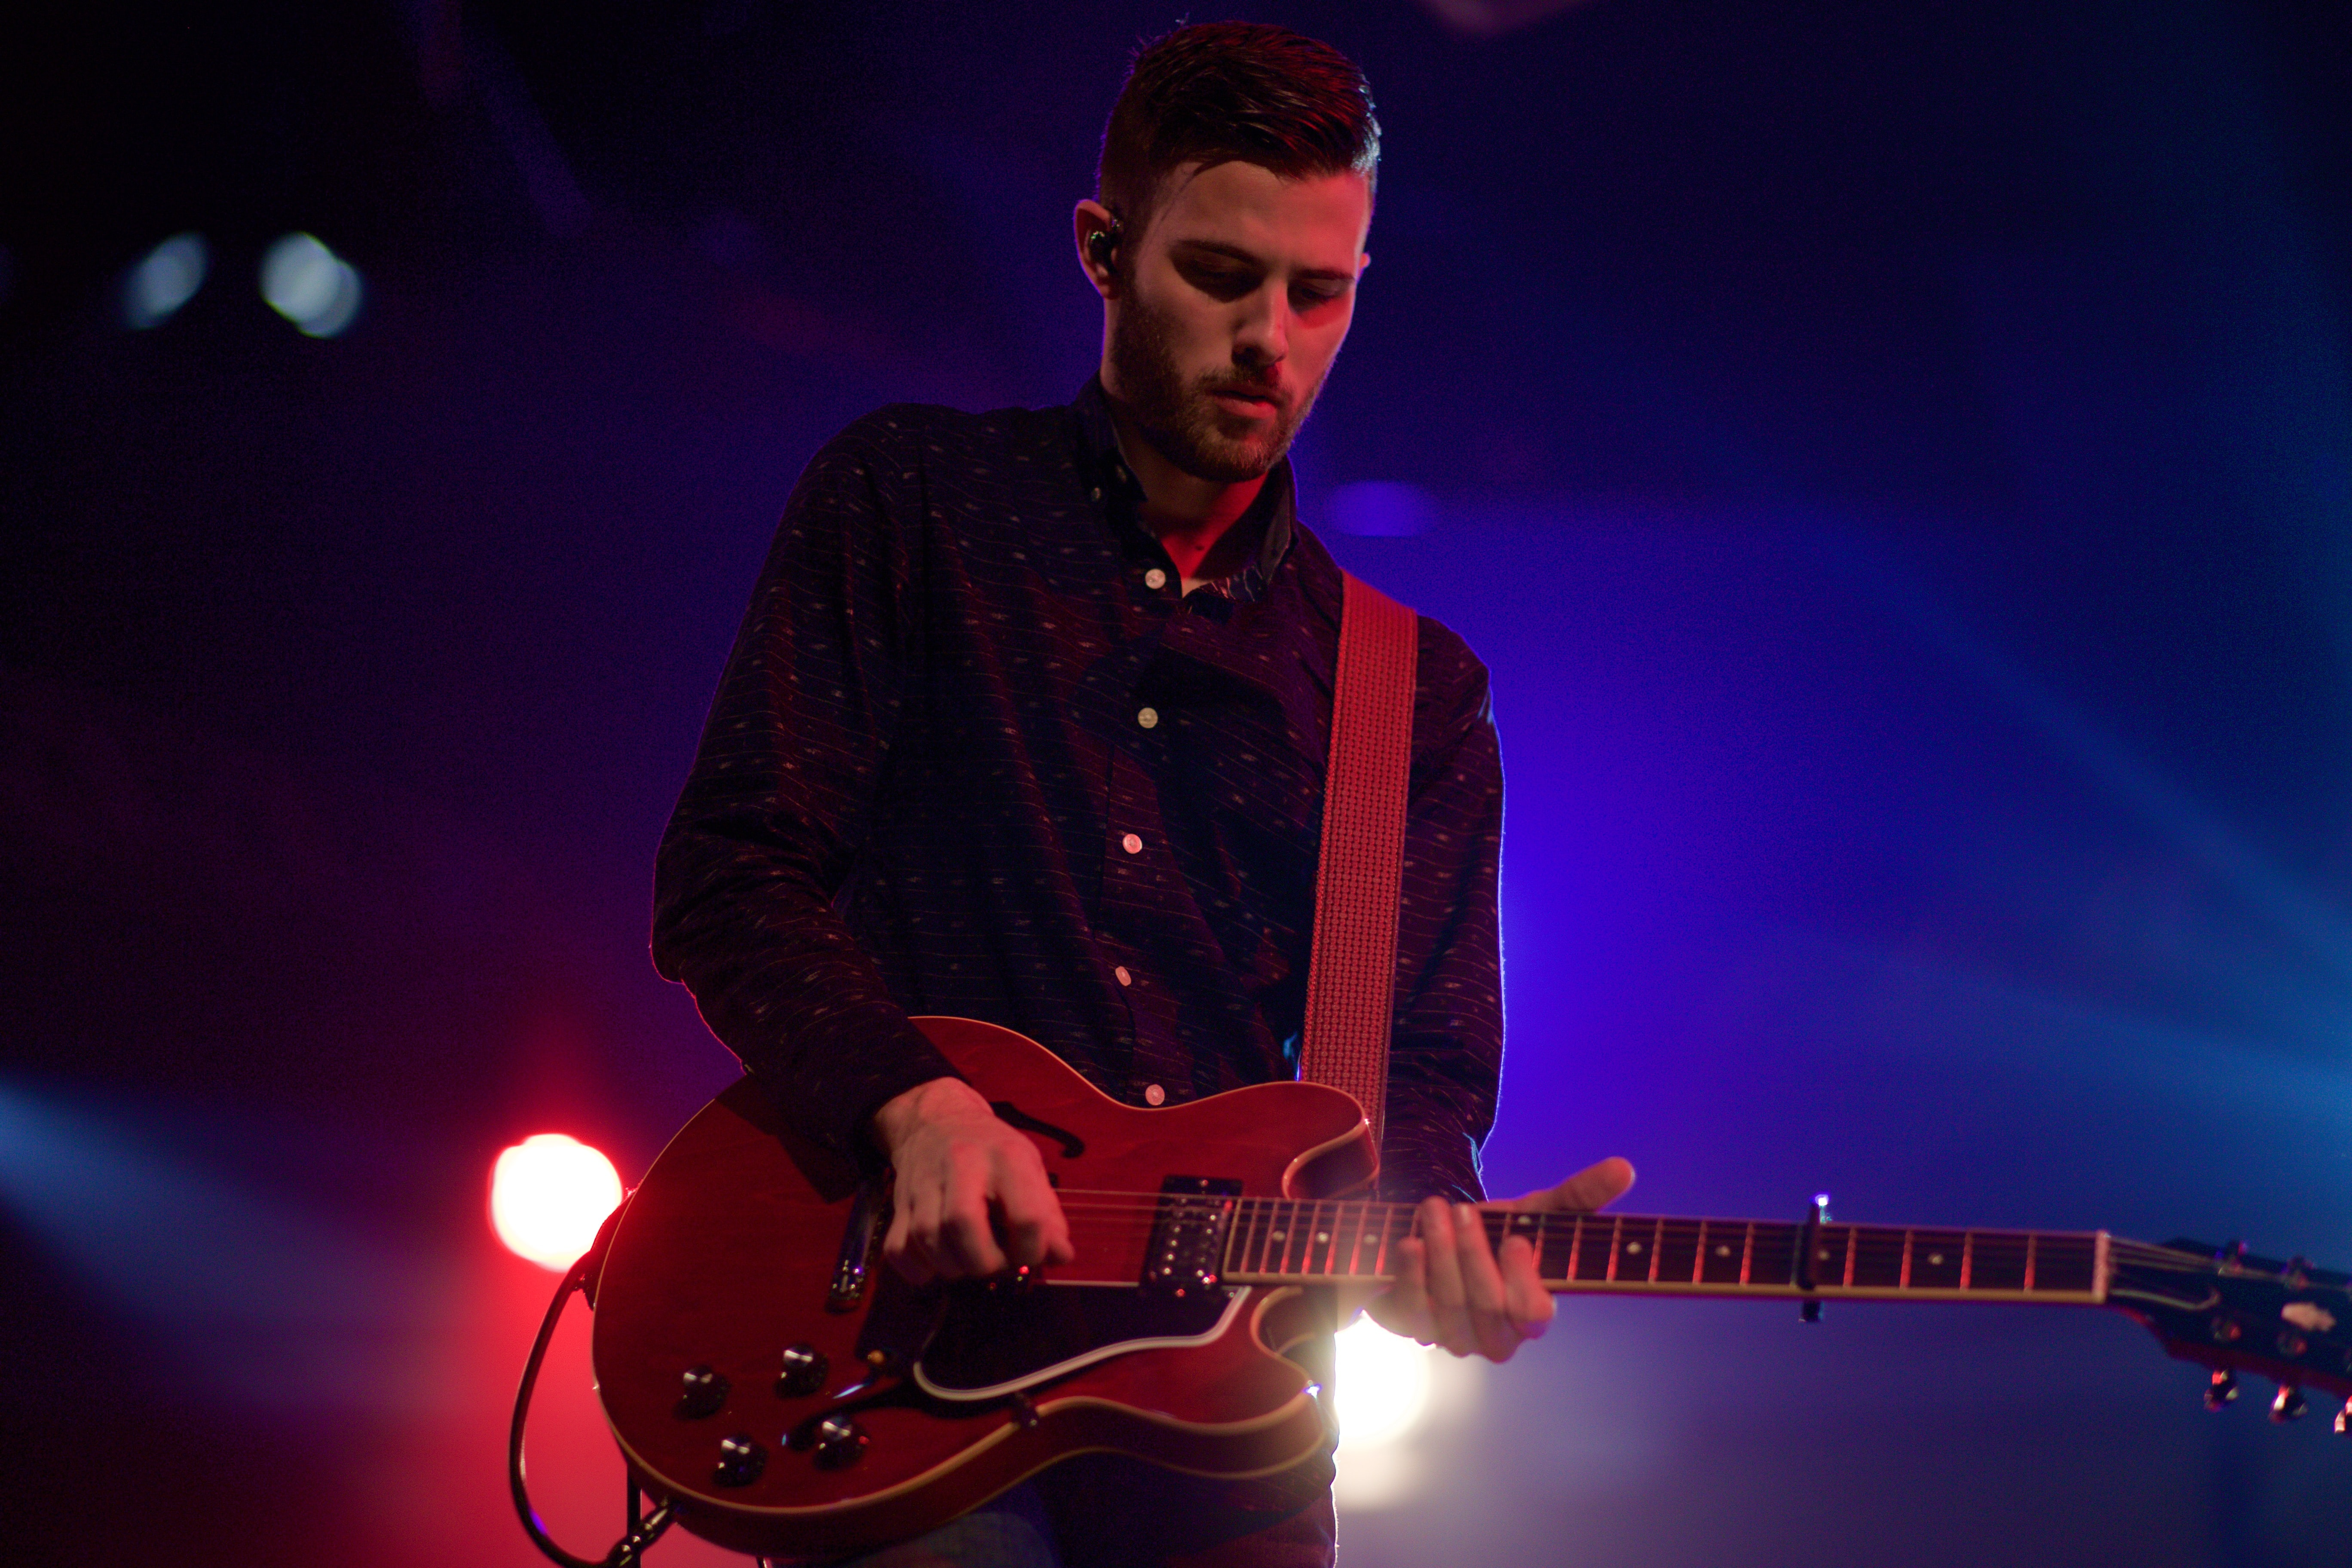 A male guitarist in a shirt performing on stage with blue and red lights behind him